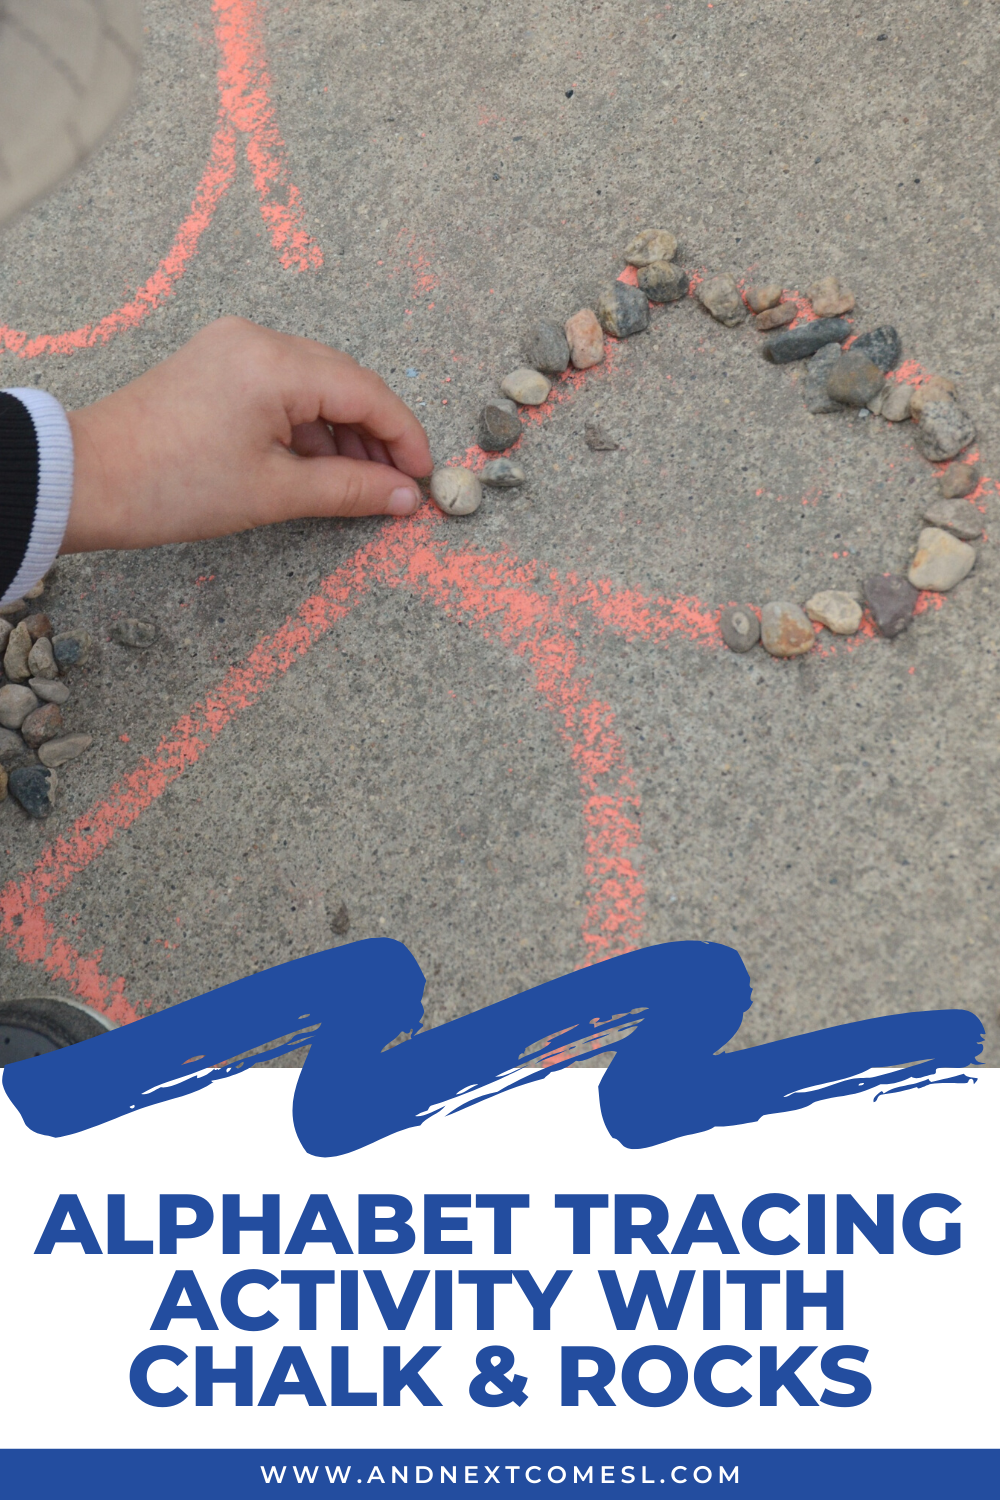 Outdoor alphabet tracing activity for kids using chalk and small rocks - a fun preschool activity for practicing tracing letters